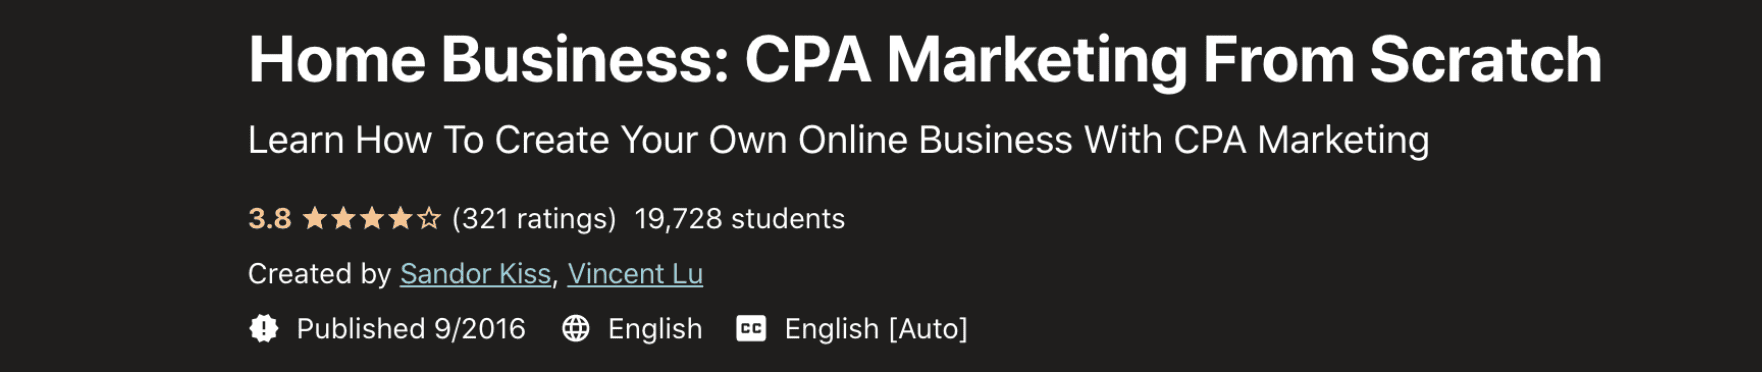 Home Business- CPA Marketing From Scratch